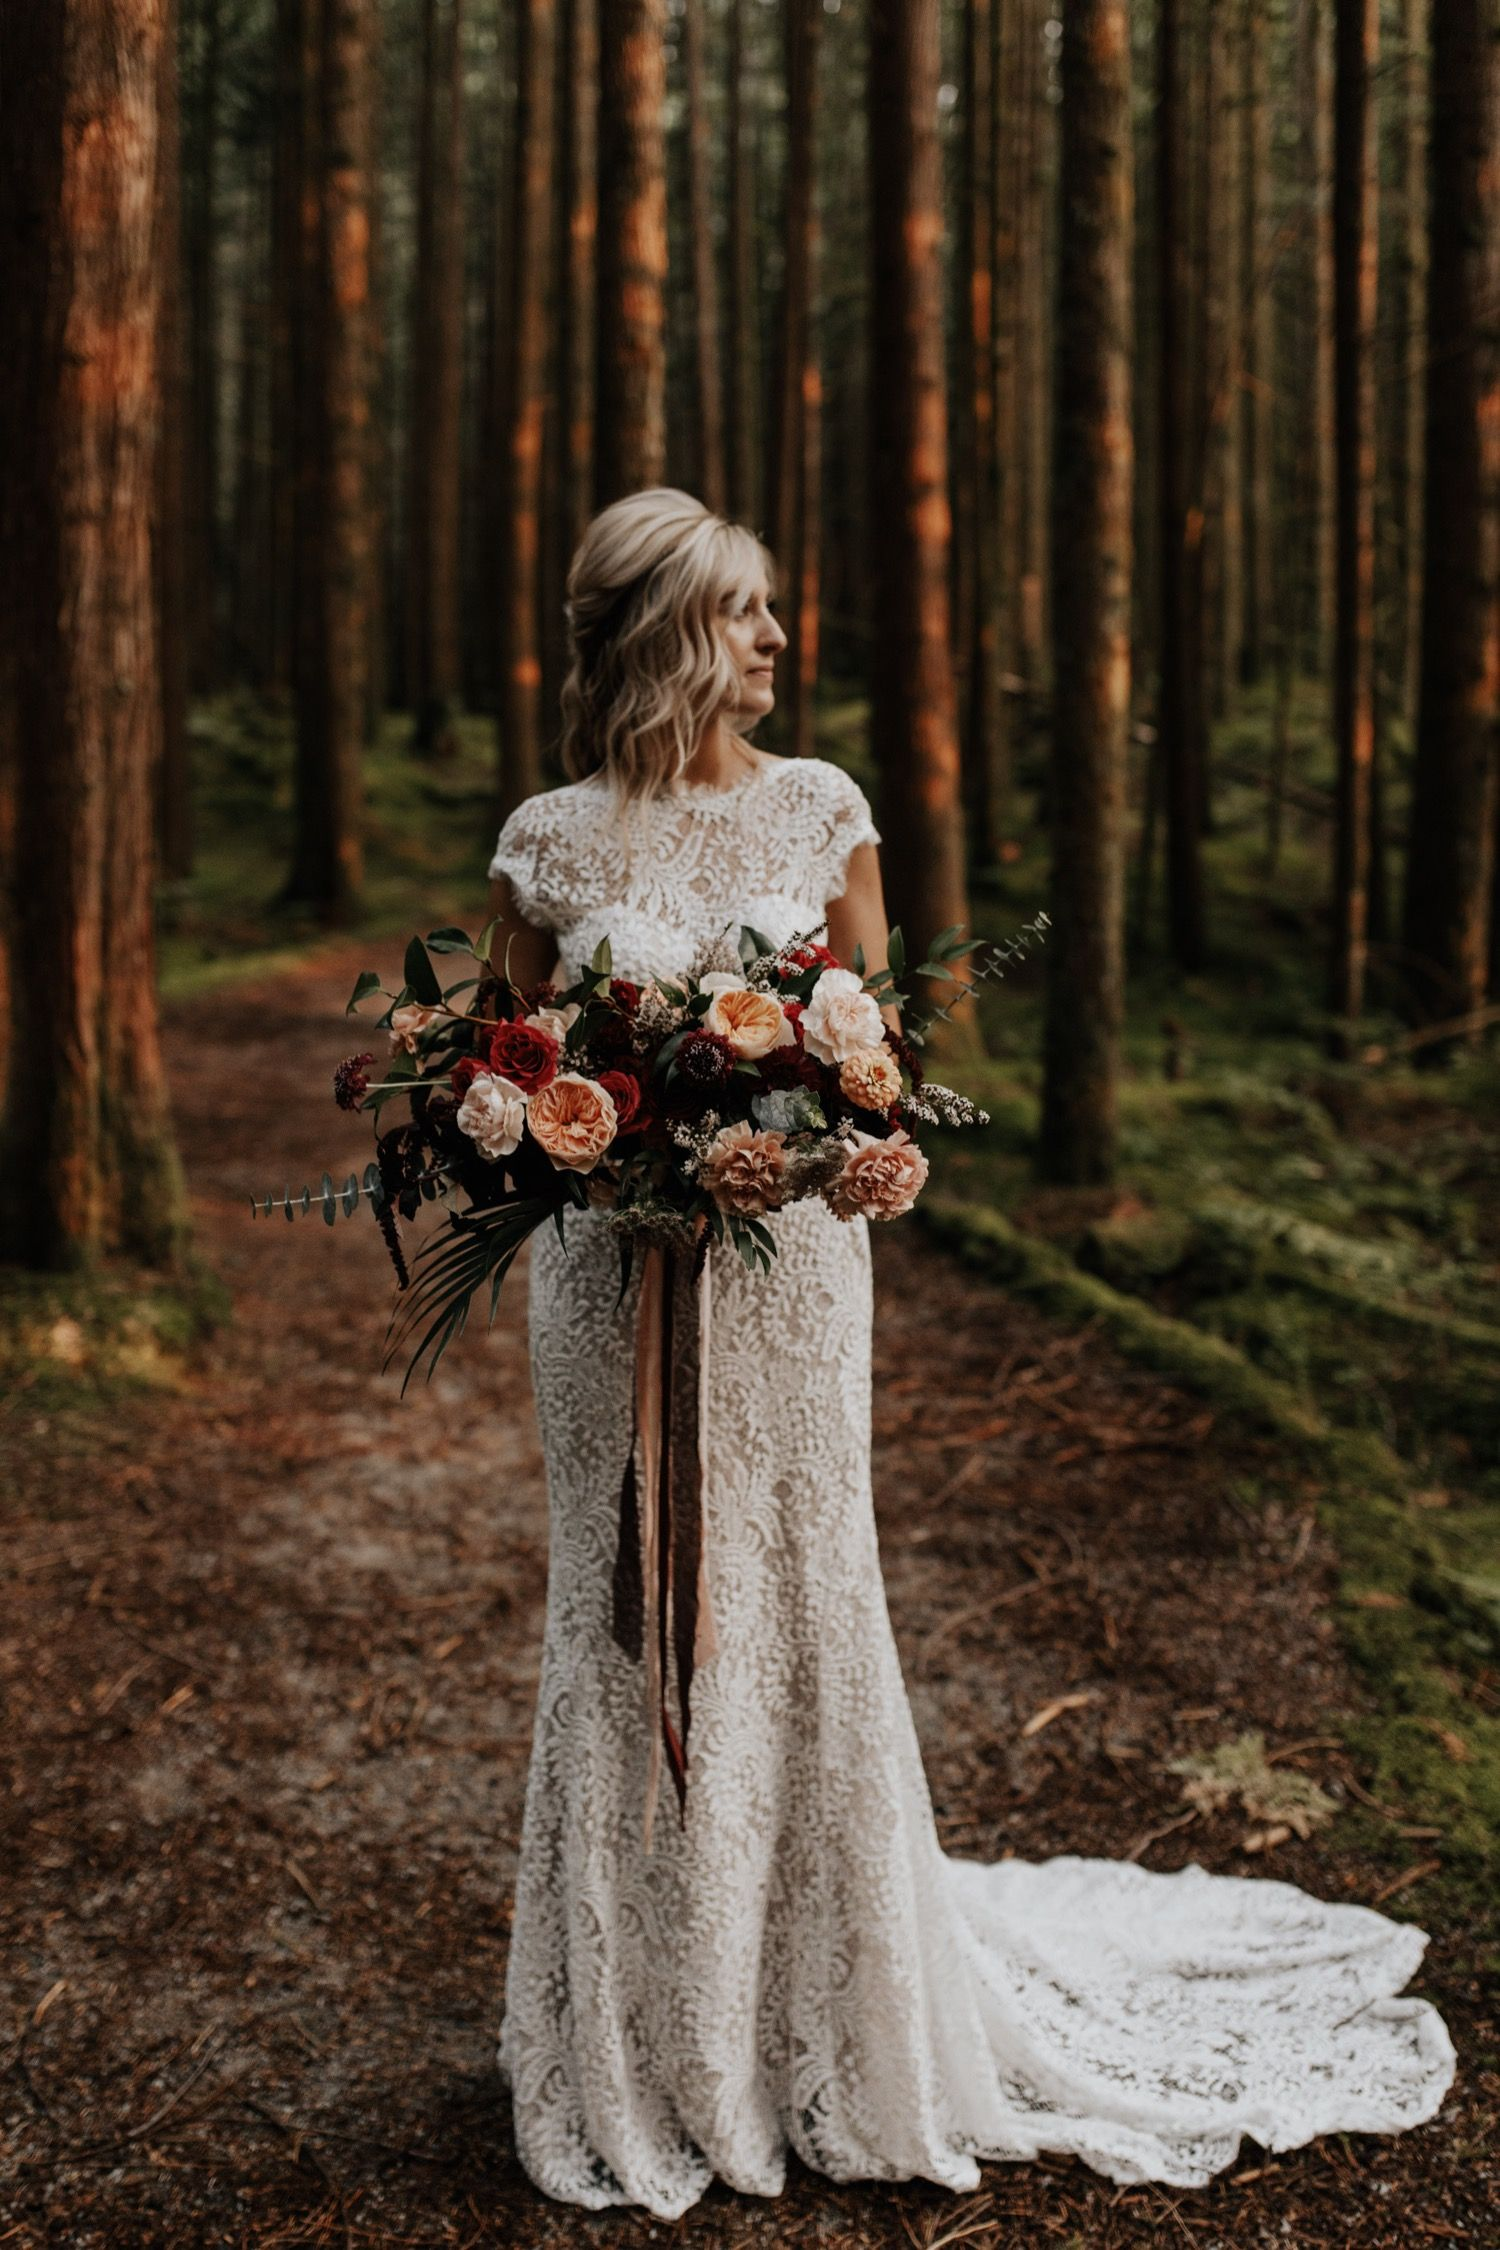 Forest Elopement Vancouver Canada Tessa Shannon Photography Wedding Photoshoot Forest Forest Wedding Ceremony Forest Styled Shoot [ 2250 x 1500 Pixel ]